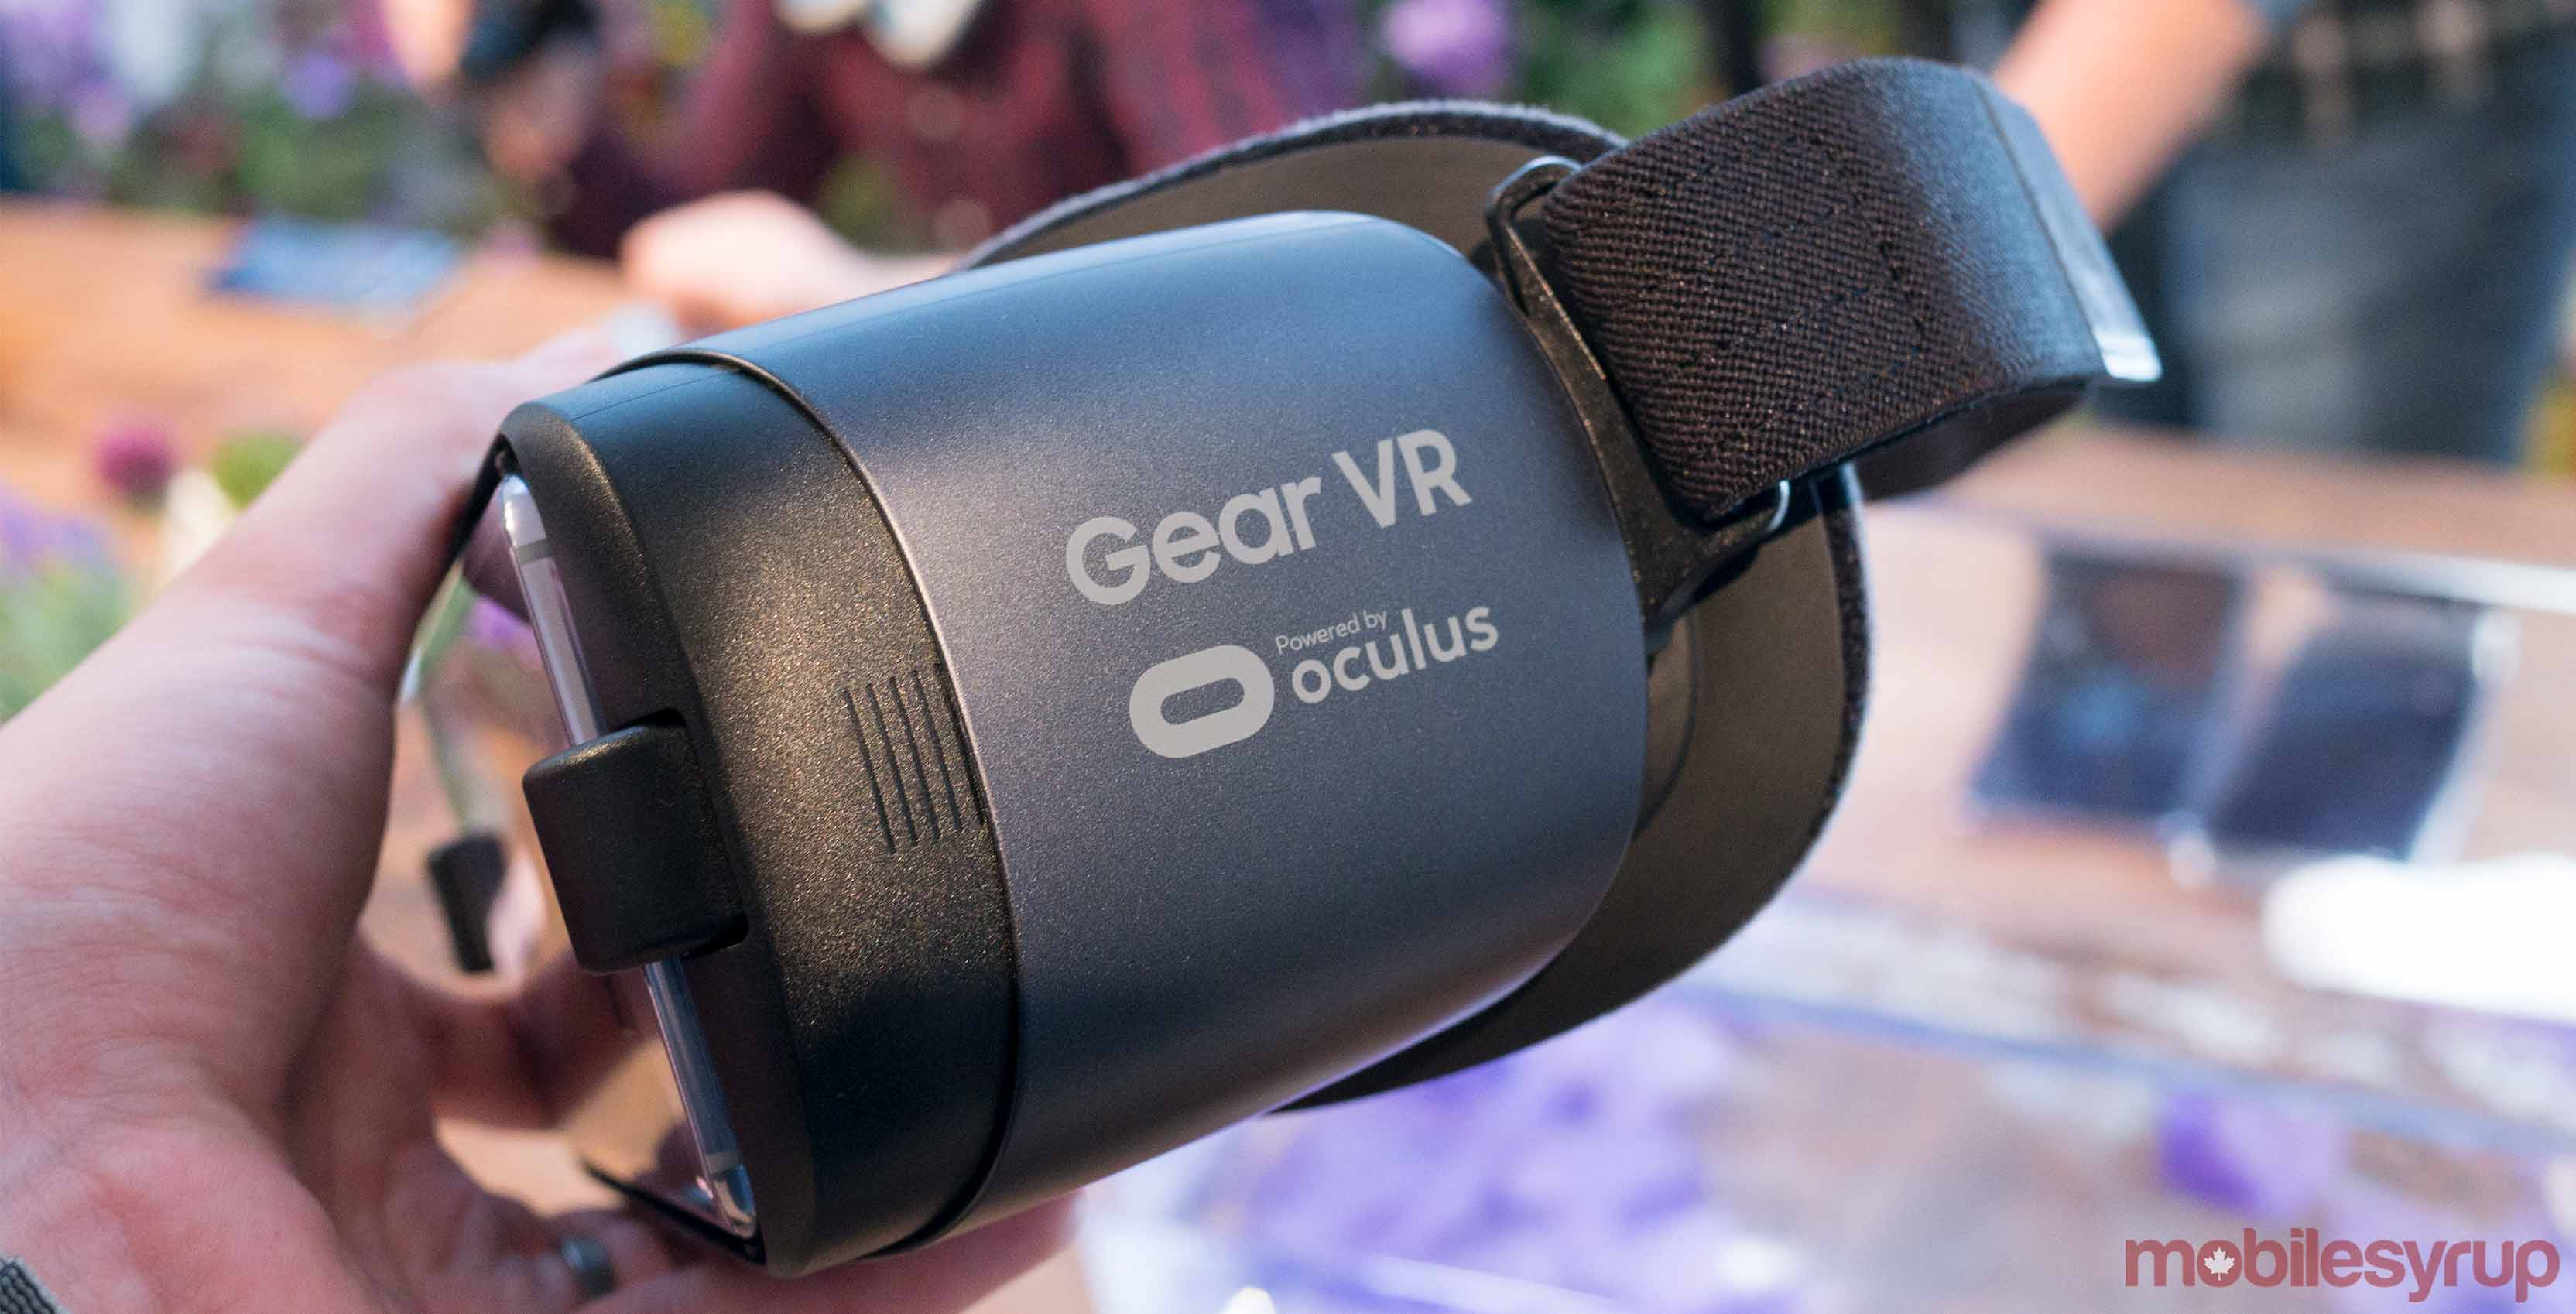 Samsung Gear VR in hand